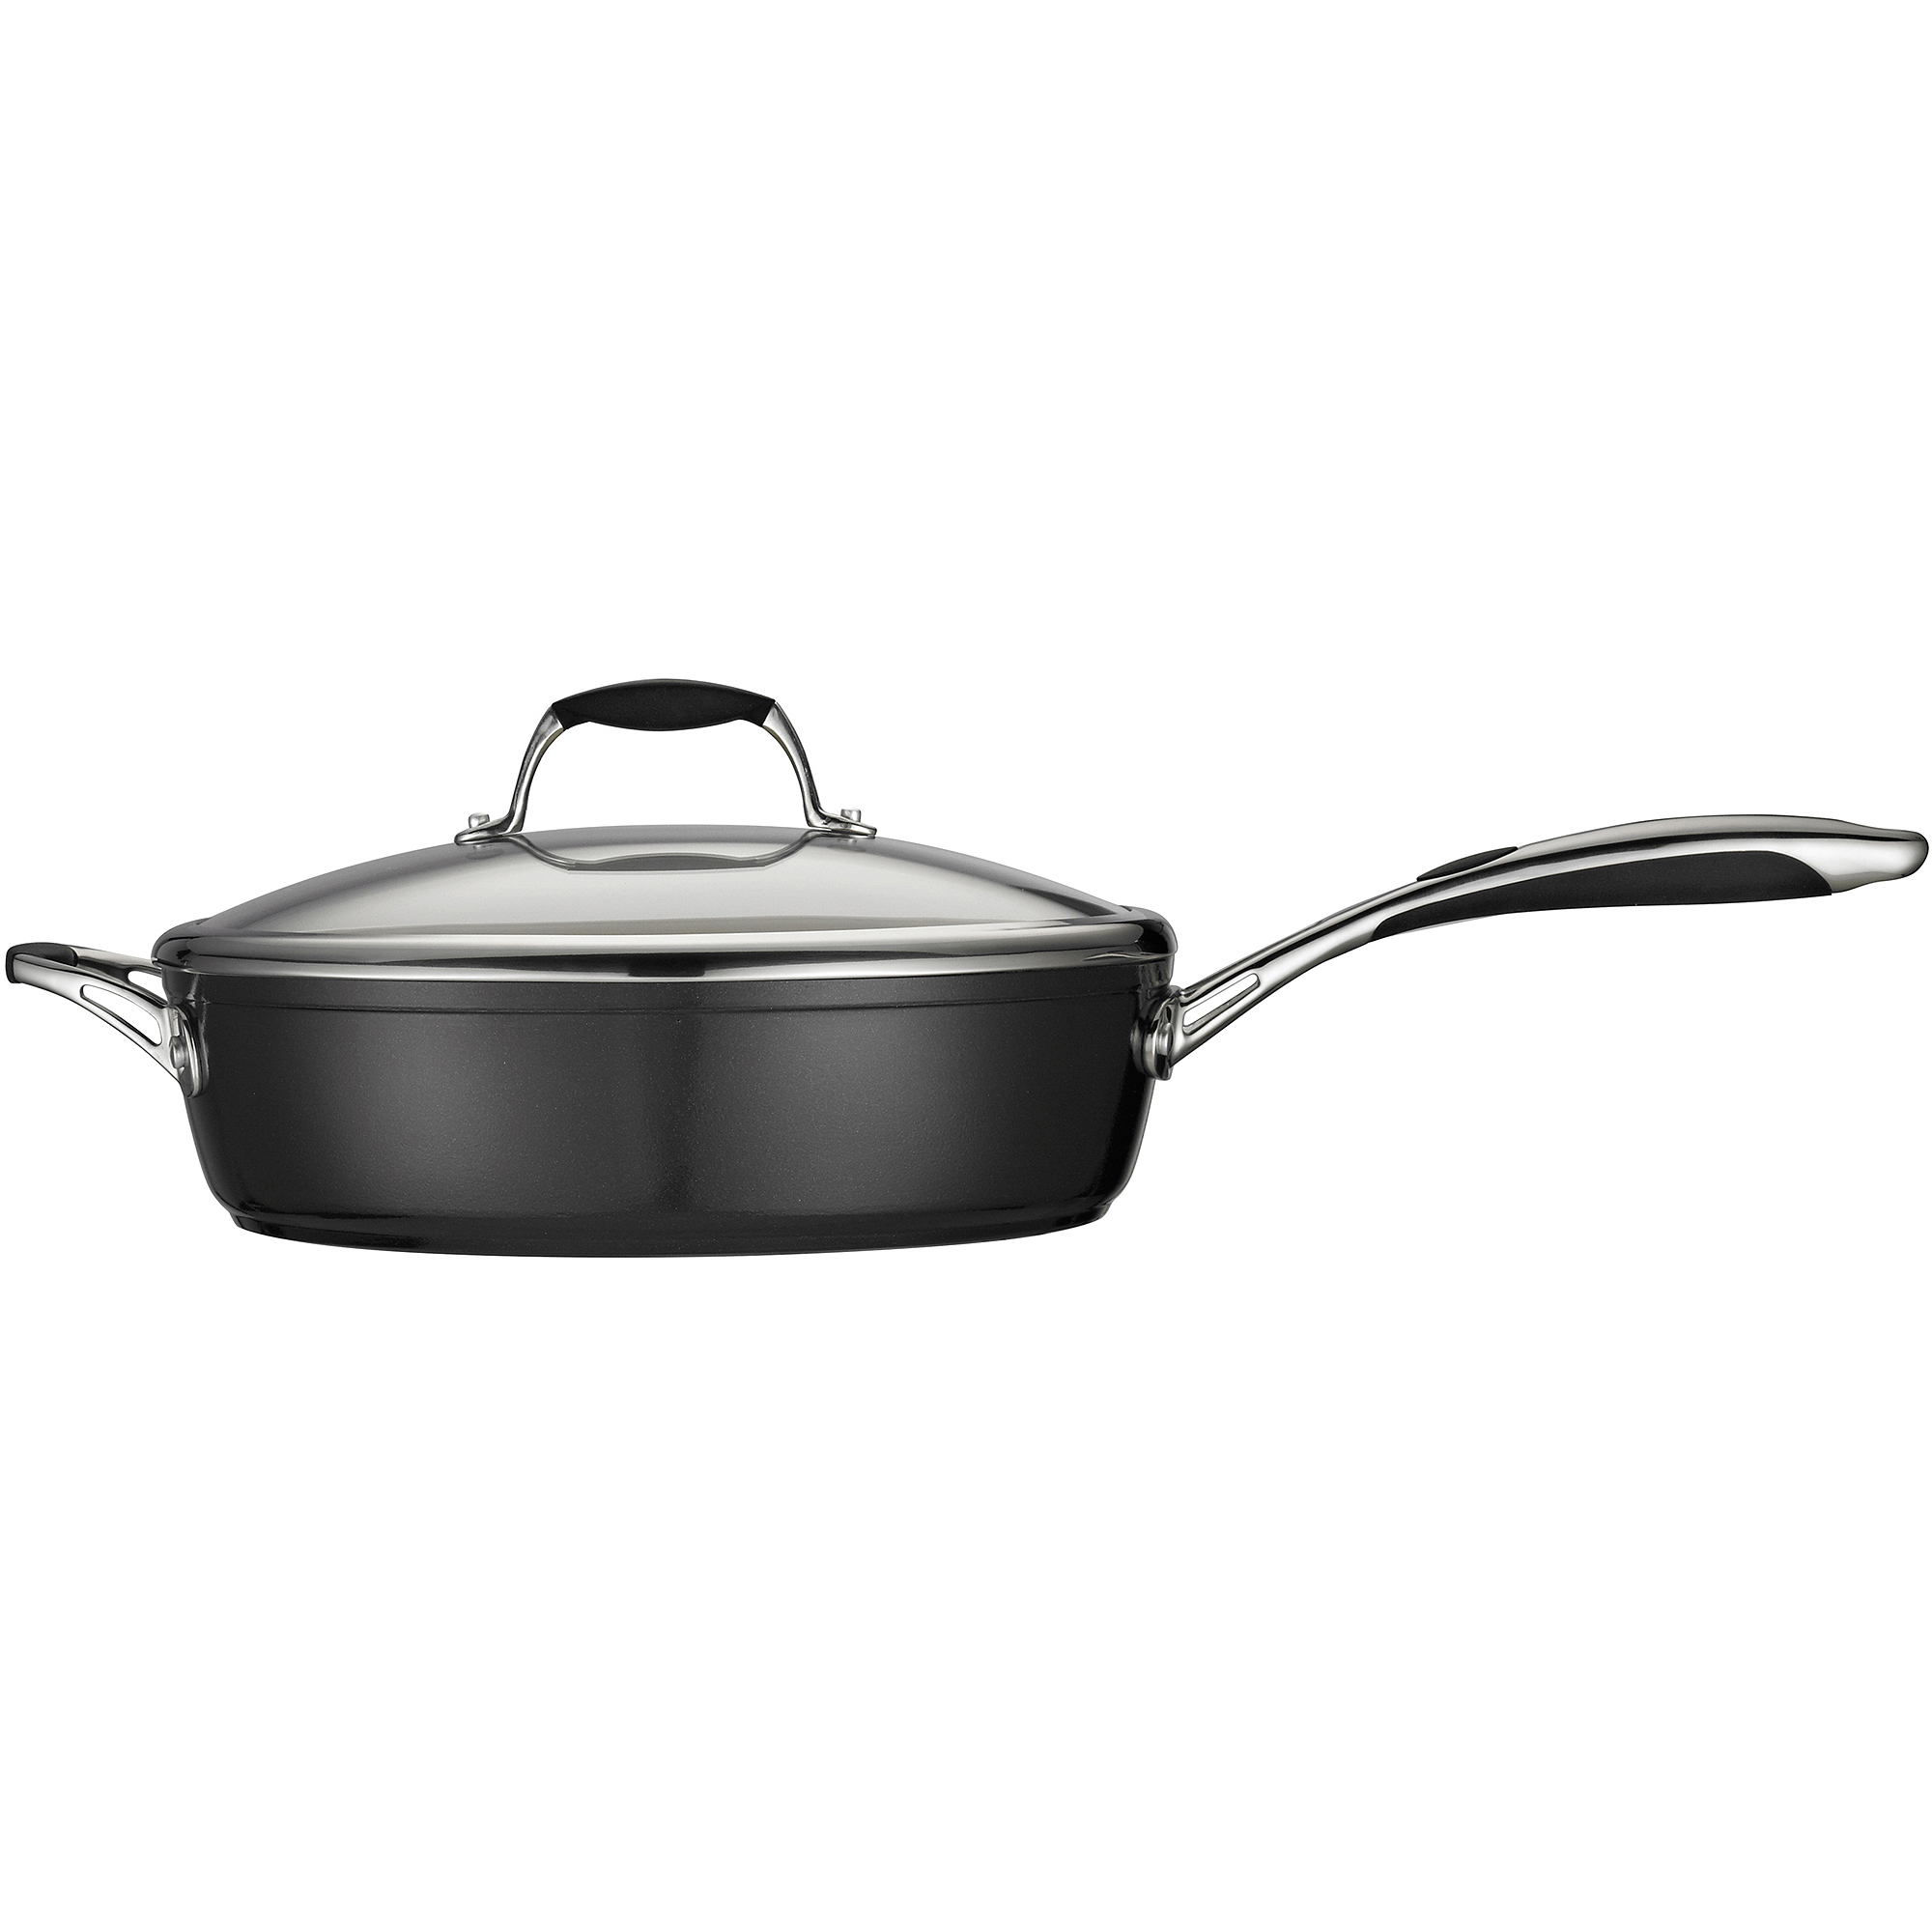 "Tramontina Gourmet Ceramica_01 Deluxe 11"" Covered Deep Skillet"